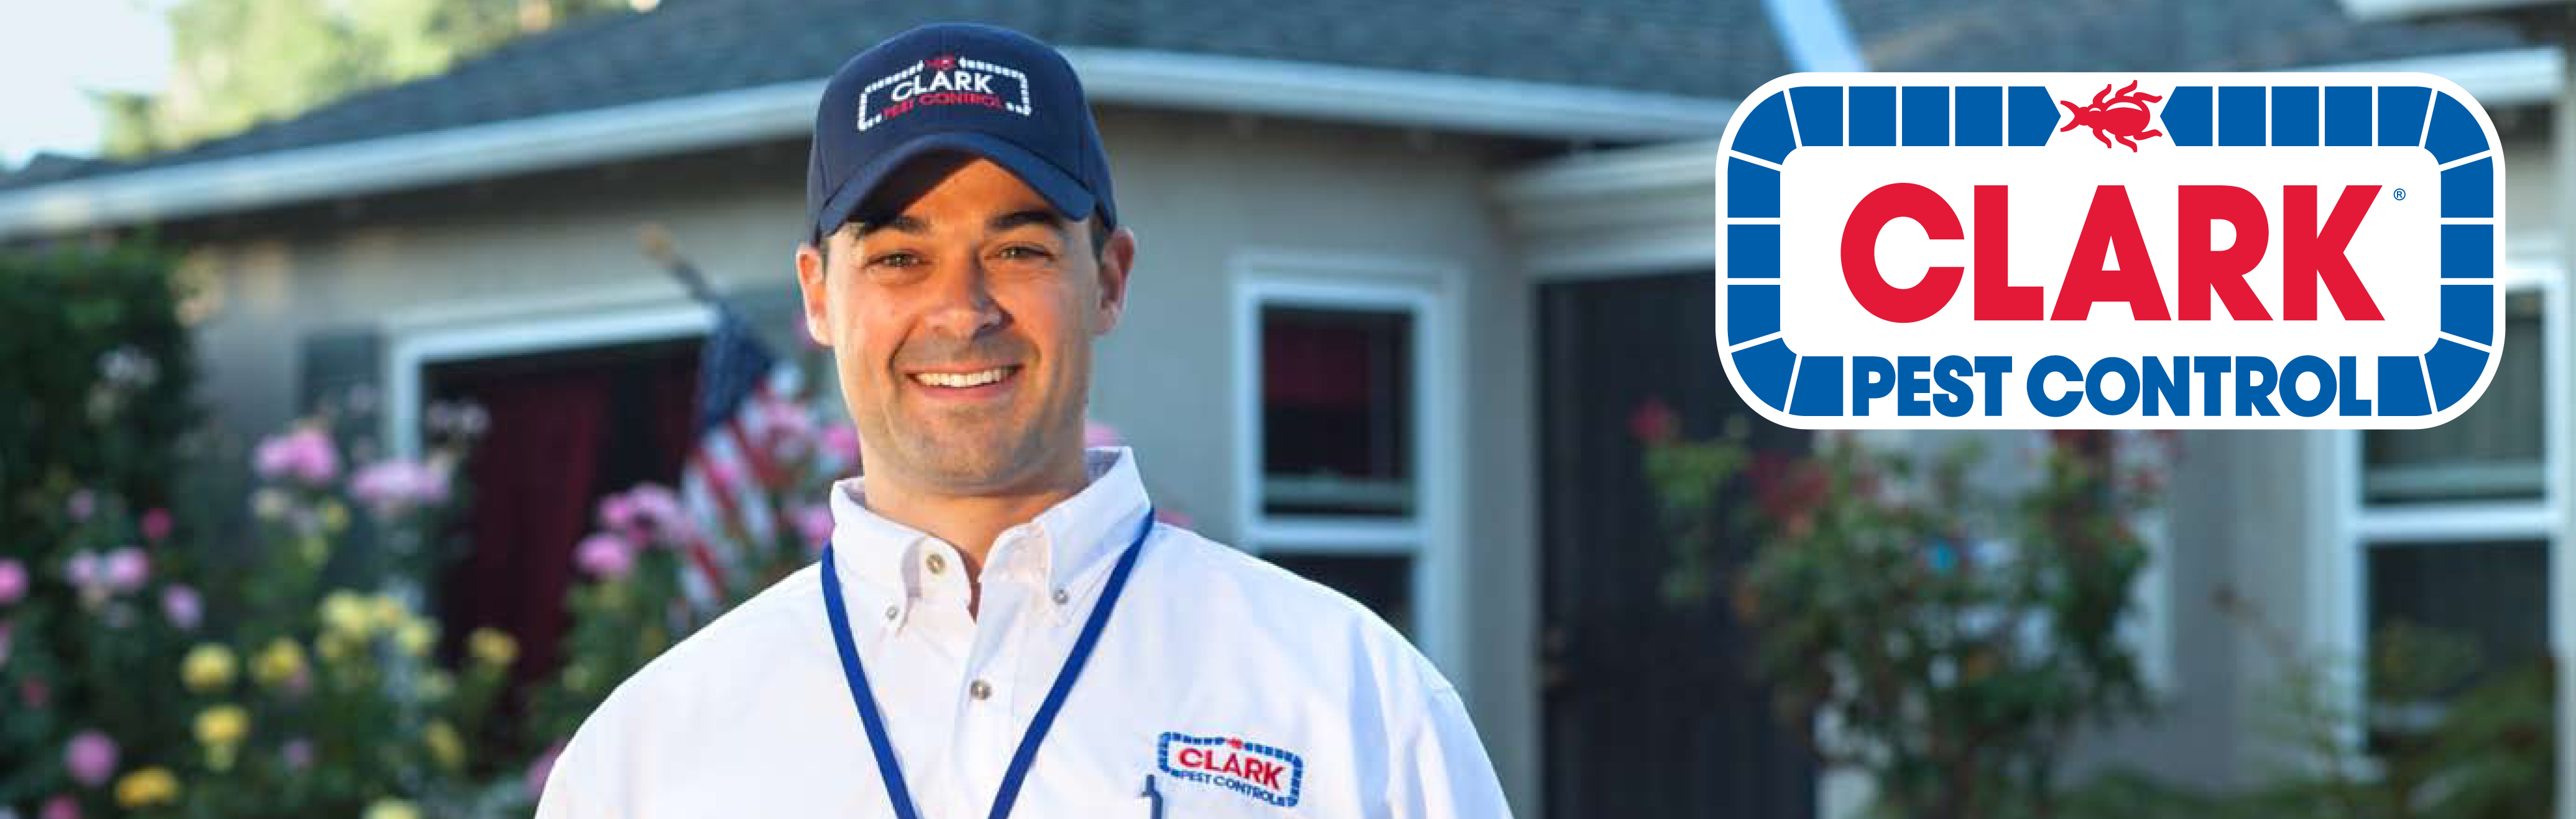 Clark Pest Control reviews | Pest Control at 555 N Guild Ave - Lodi CA